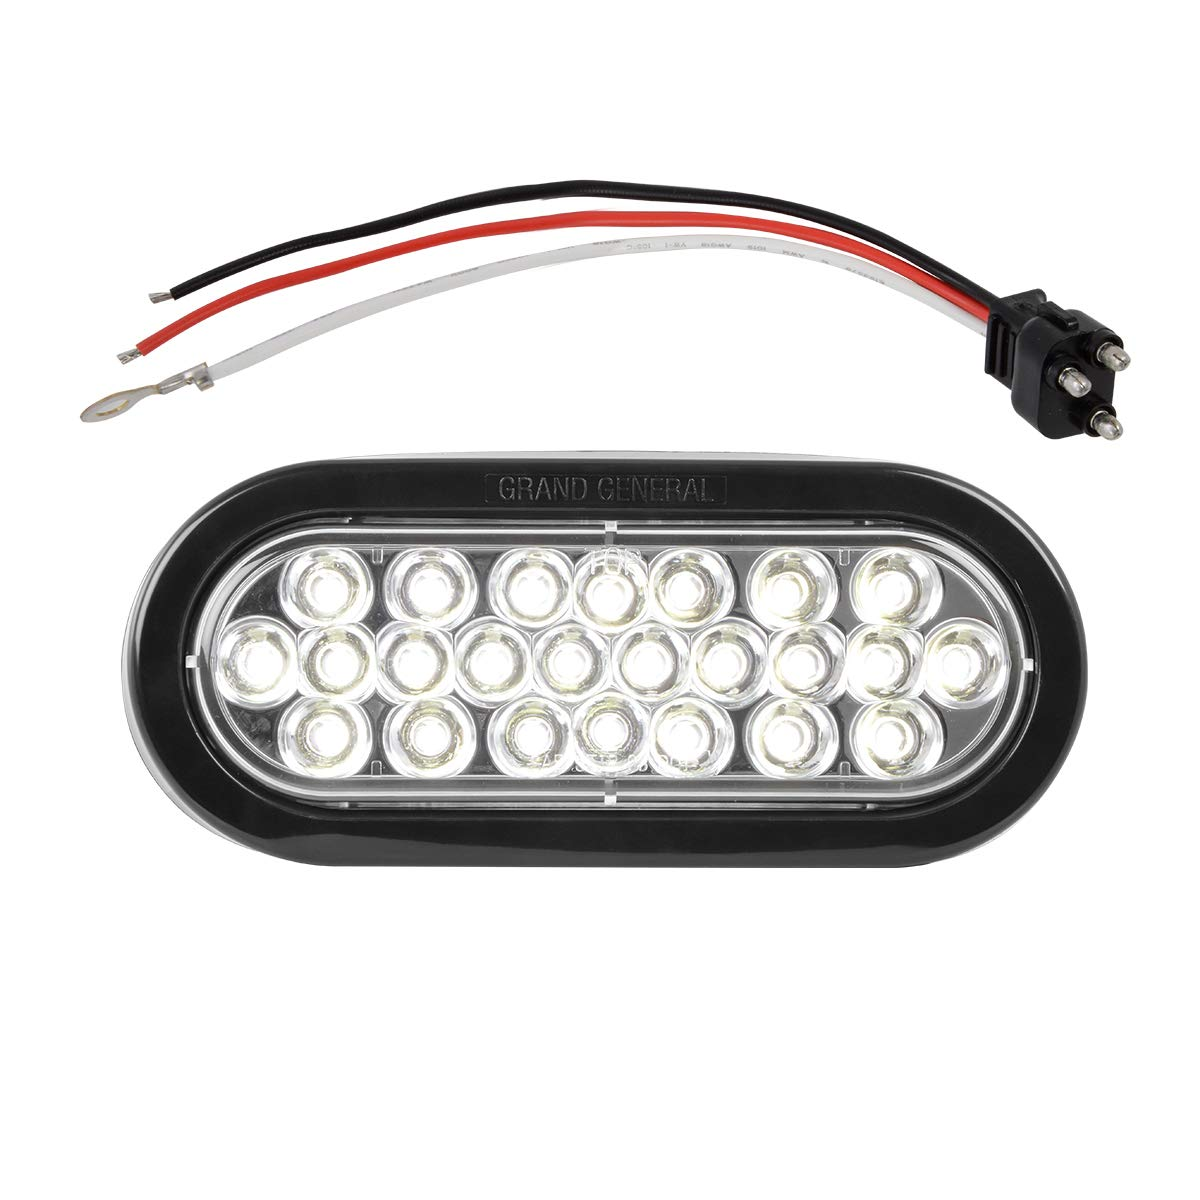 Grand General 78222BP Pearl 6'' White Oval LED Backup Light (Includes Light, Grommet and Pigtail for Trucks, Trailers, RVs, Buses, Utility Vehicles)